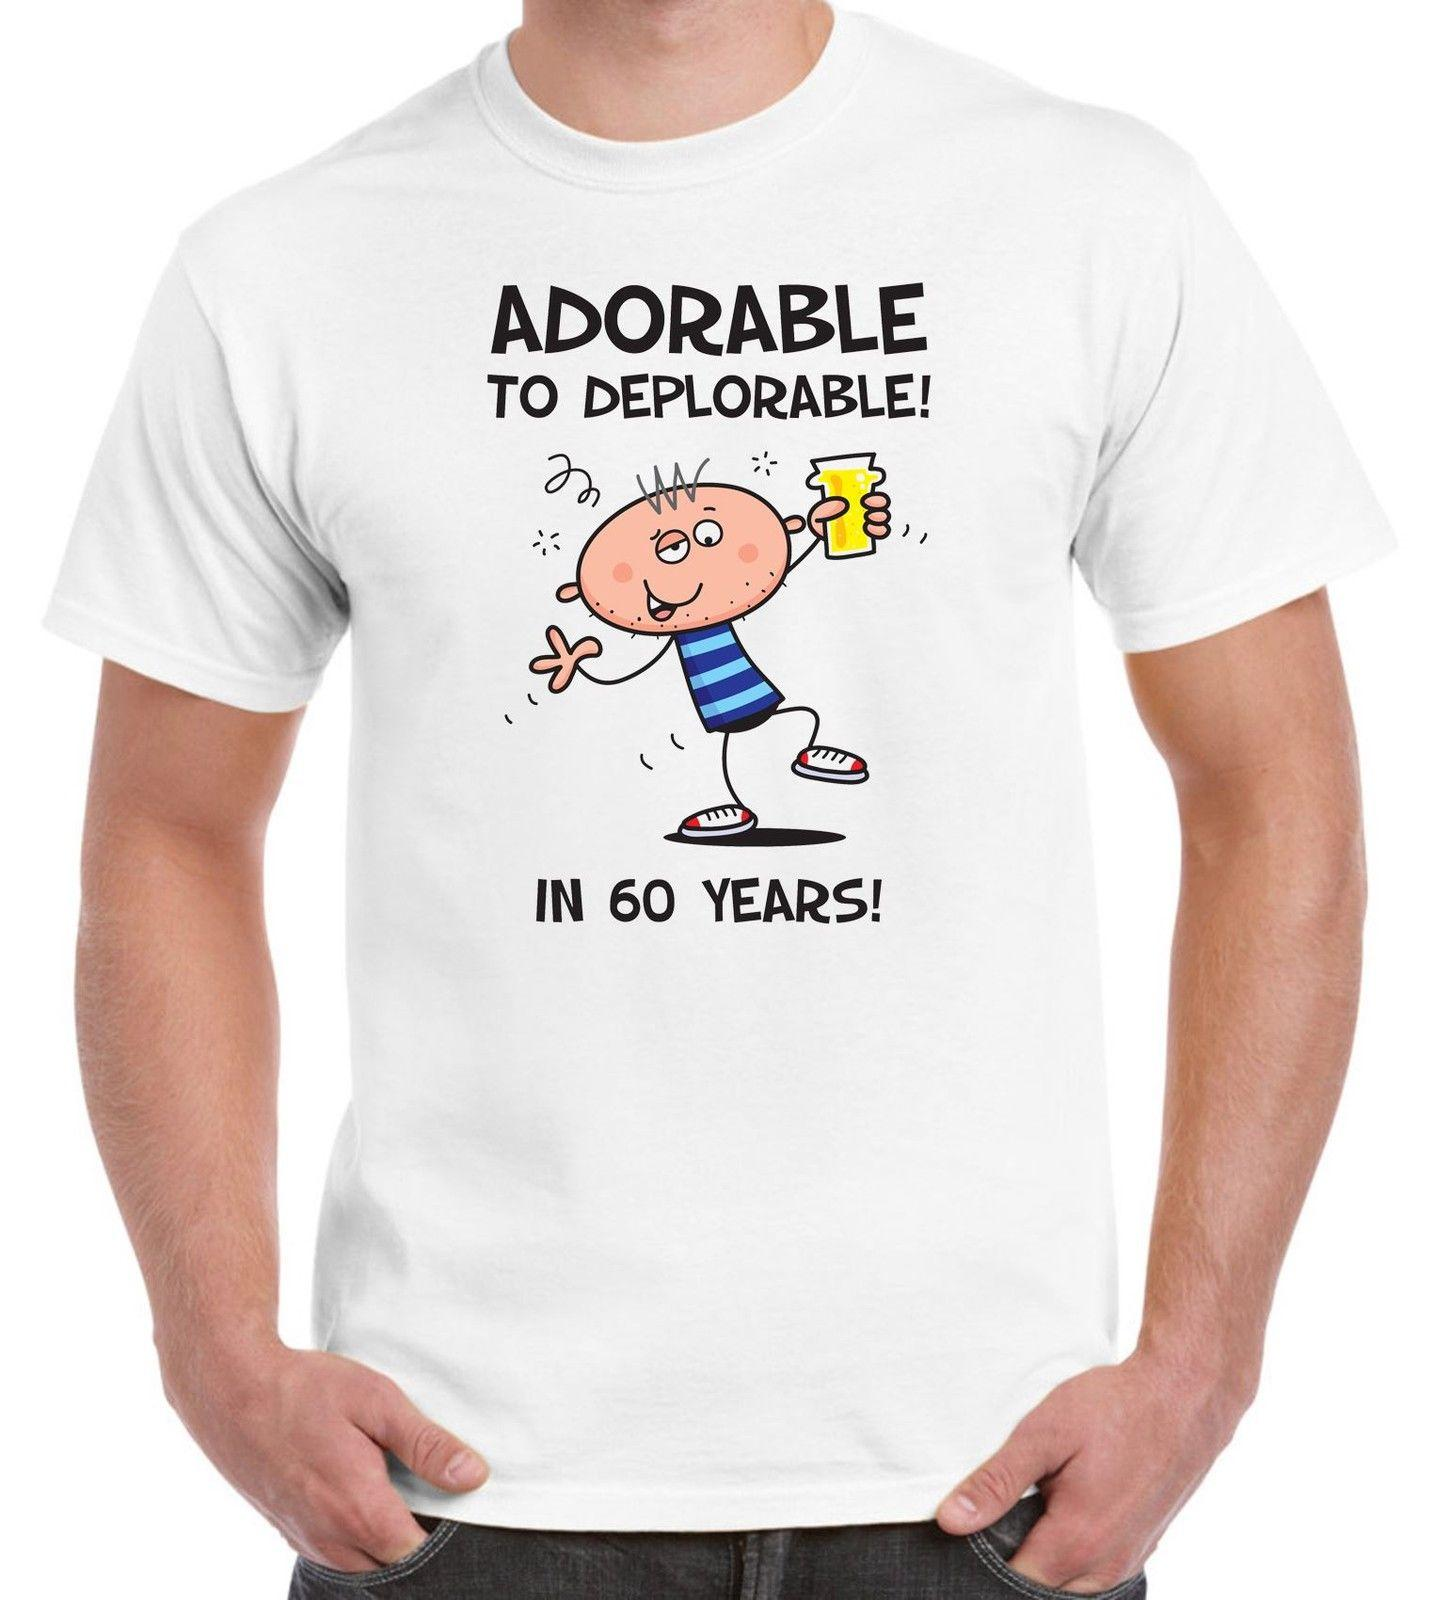 Adorable To Deplorable MenS 60th Birthday Present T Shirt Gift Great Tees Latest Designer Shirts From Global78 1148